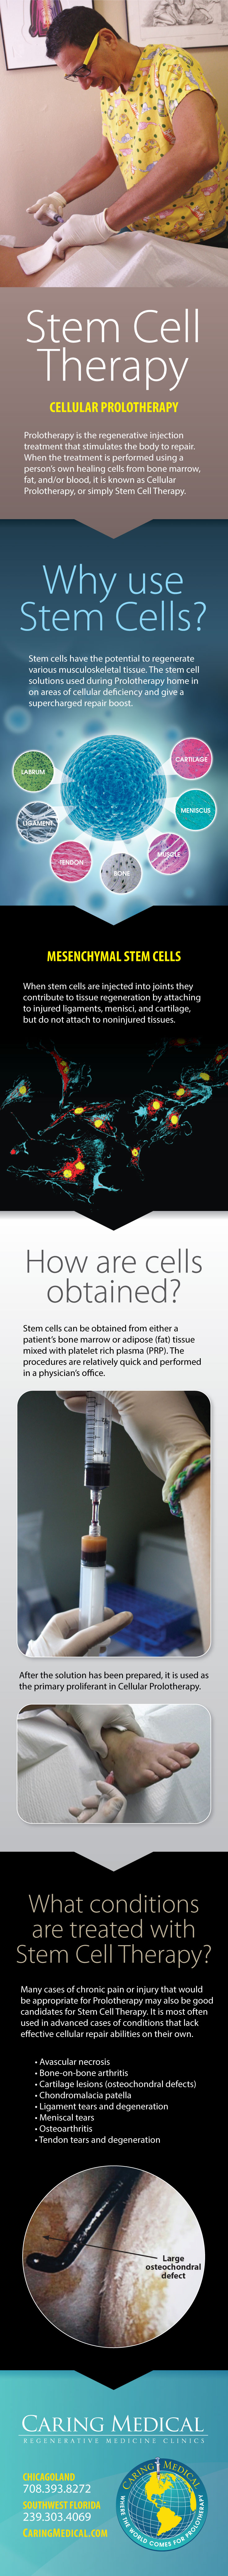 Stem Cell Therapy Infographic